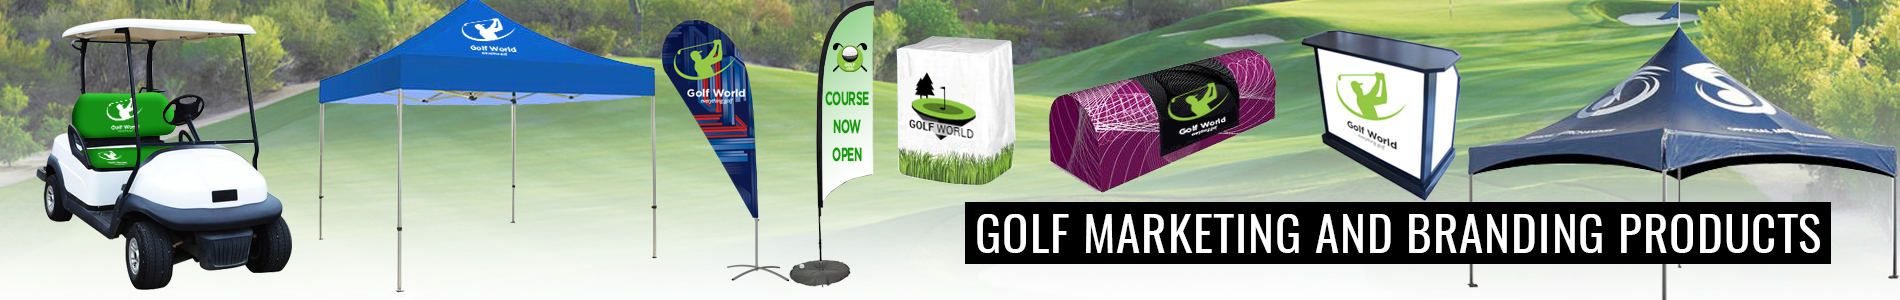 Golf Marketing and Branding Products